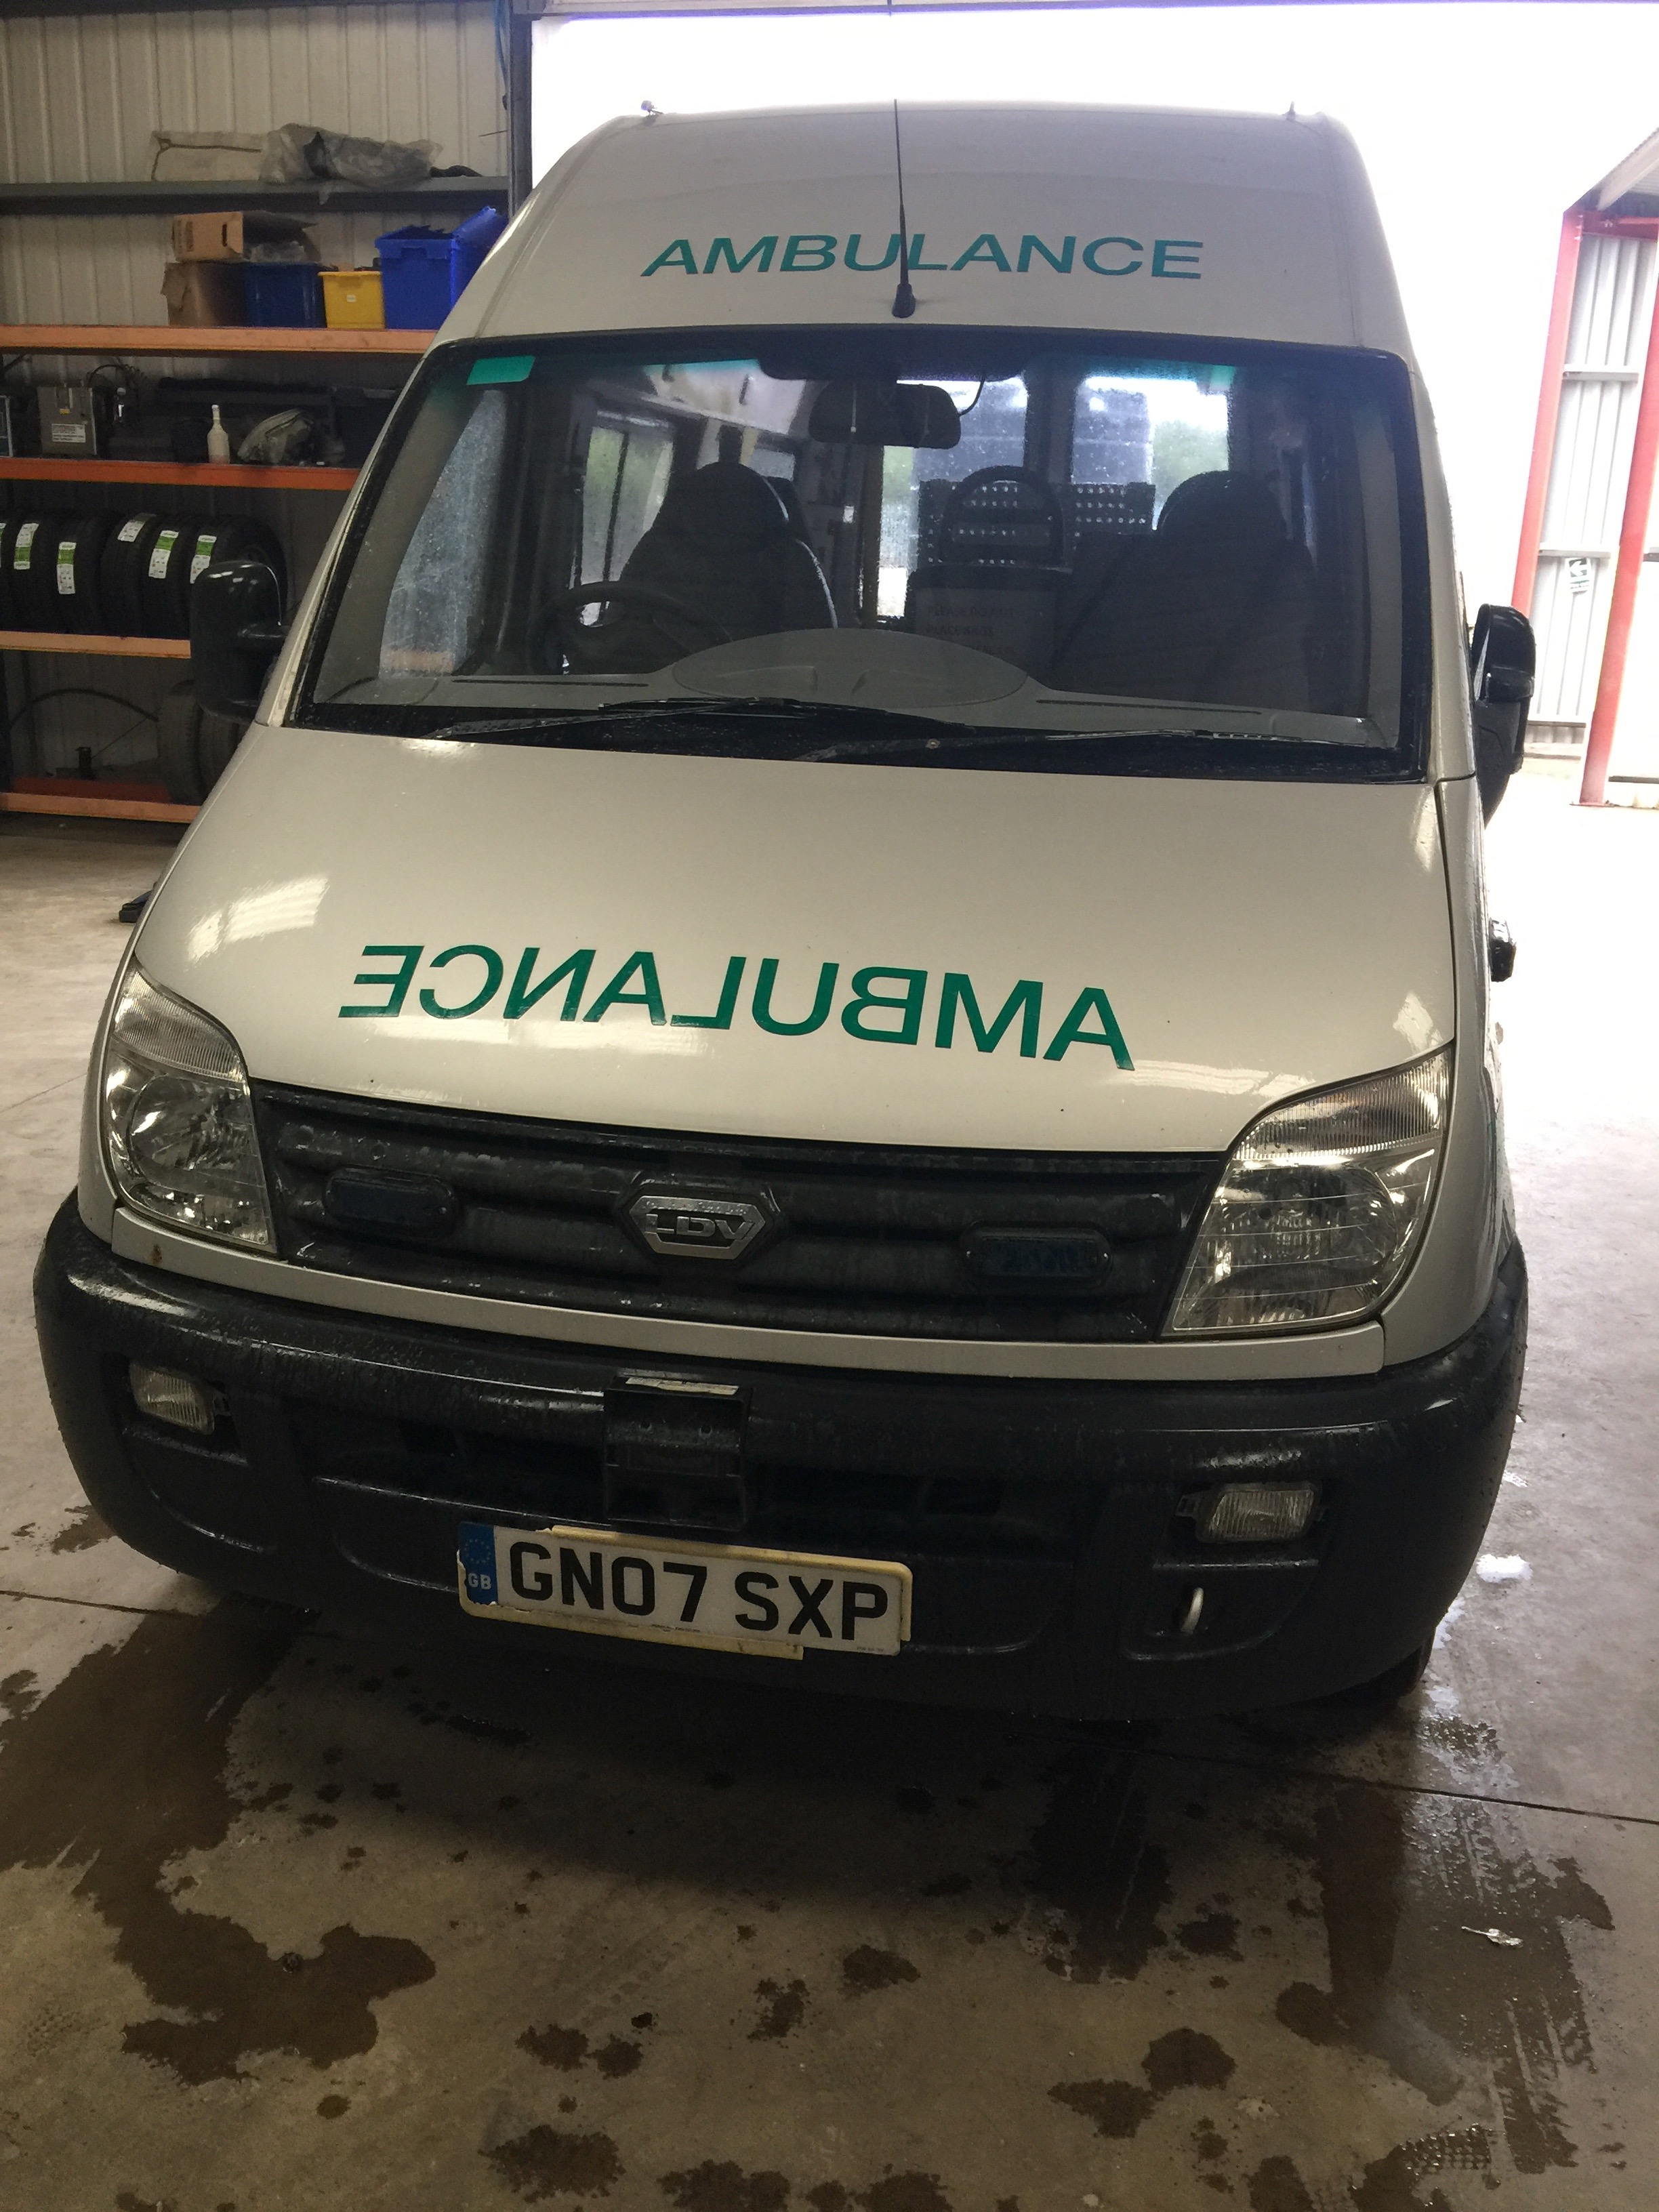 Lot 7 - LDV Maxus standard body patient transfer ambulance Registration No GN07 SXP, 271,000 recorded miles,